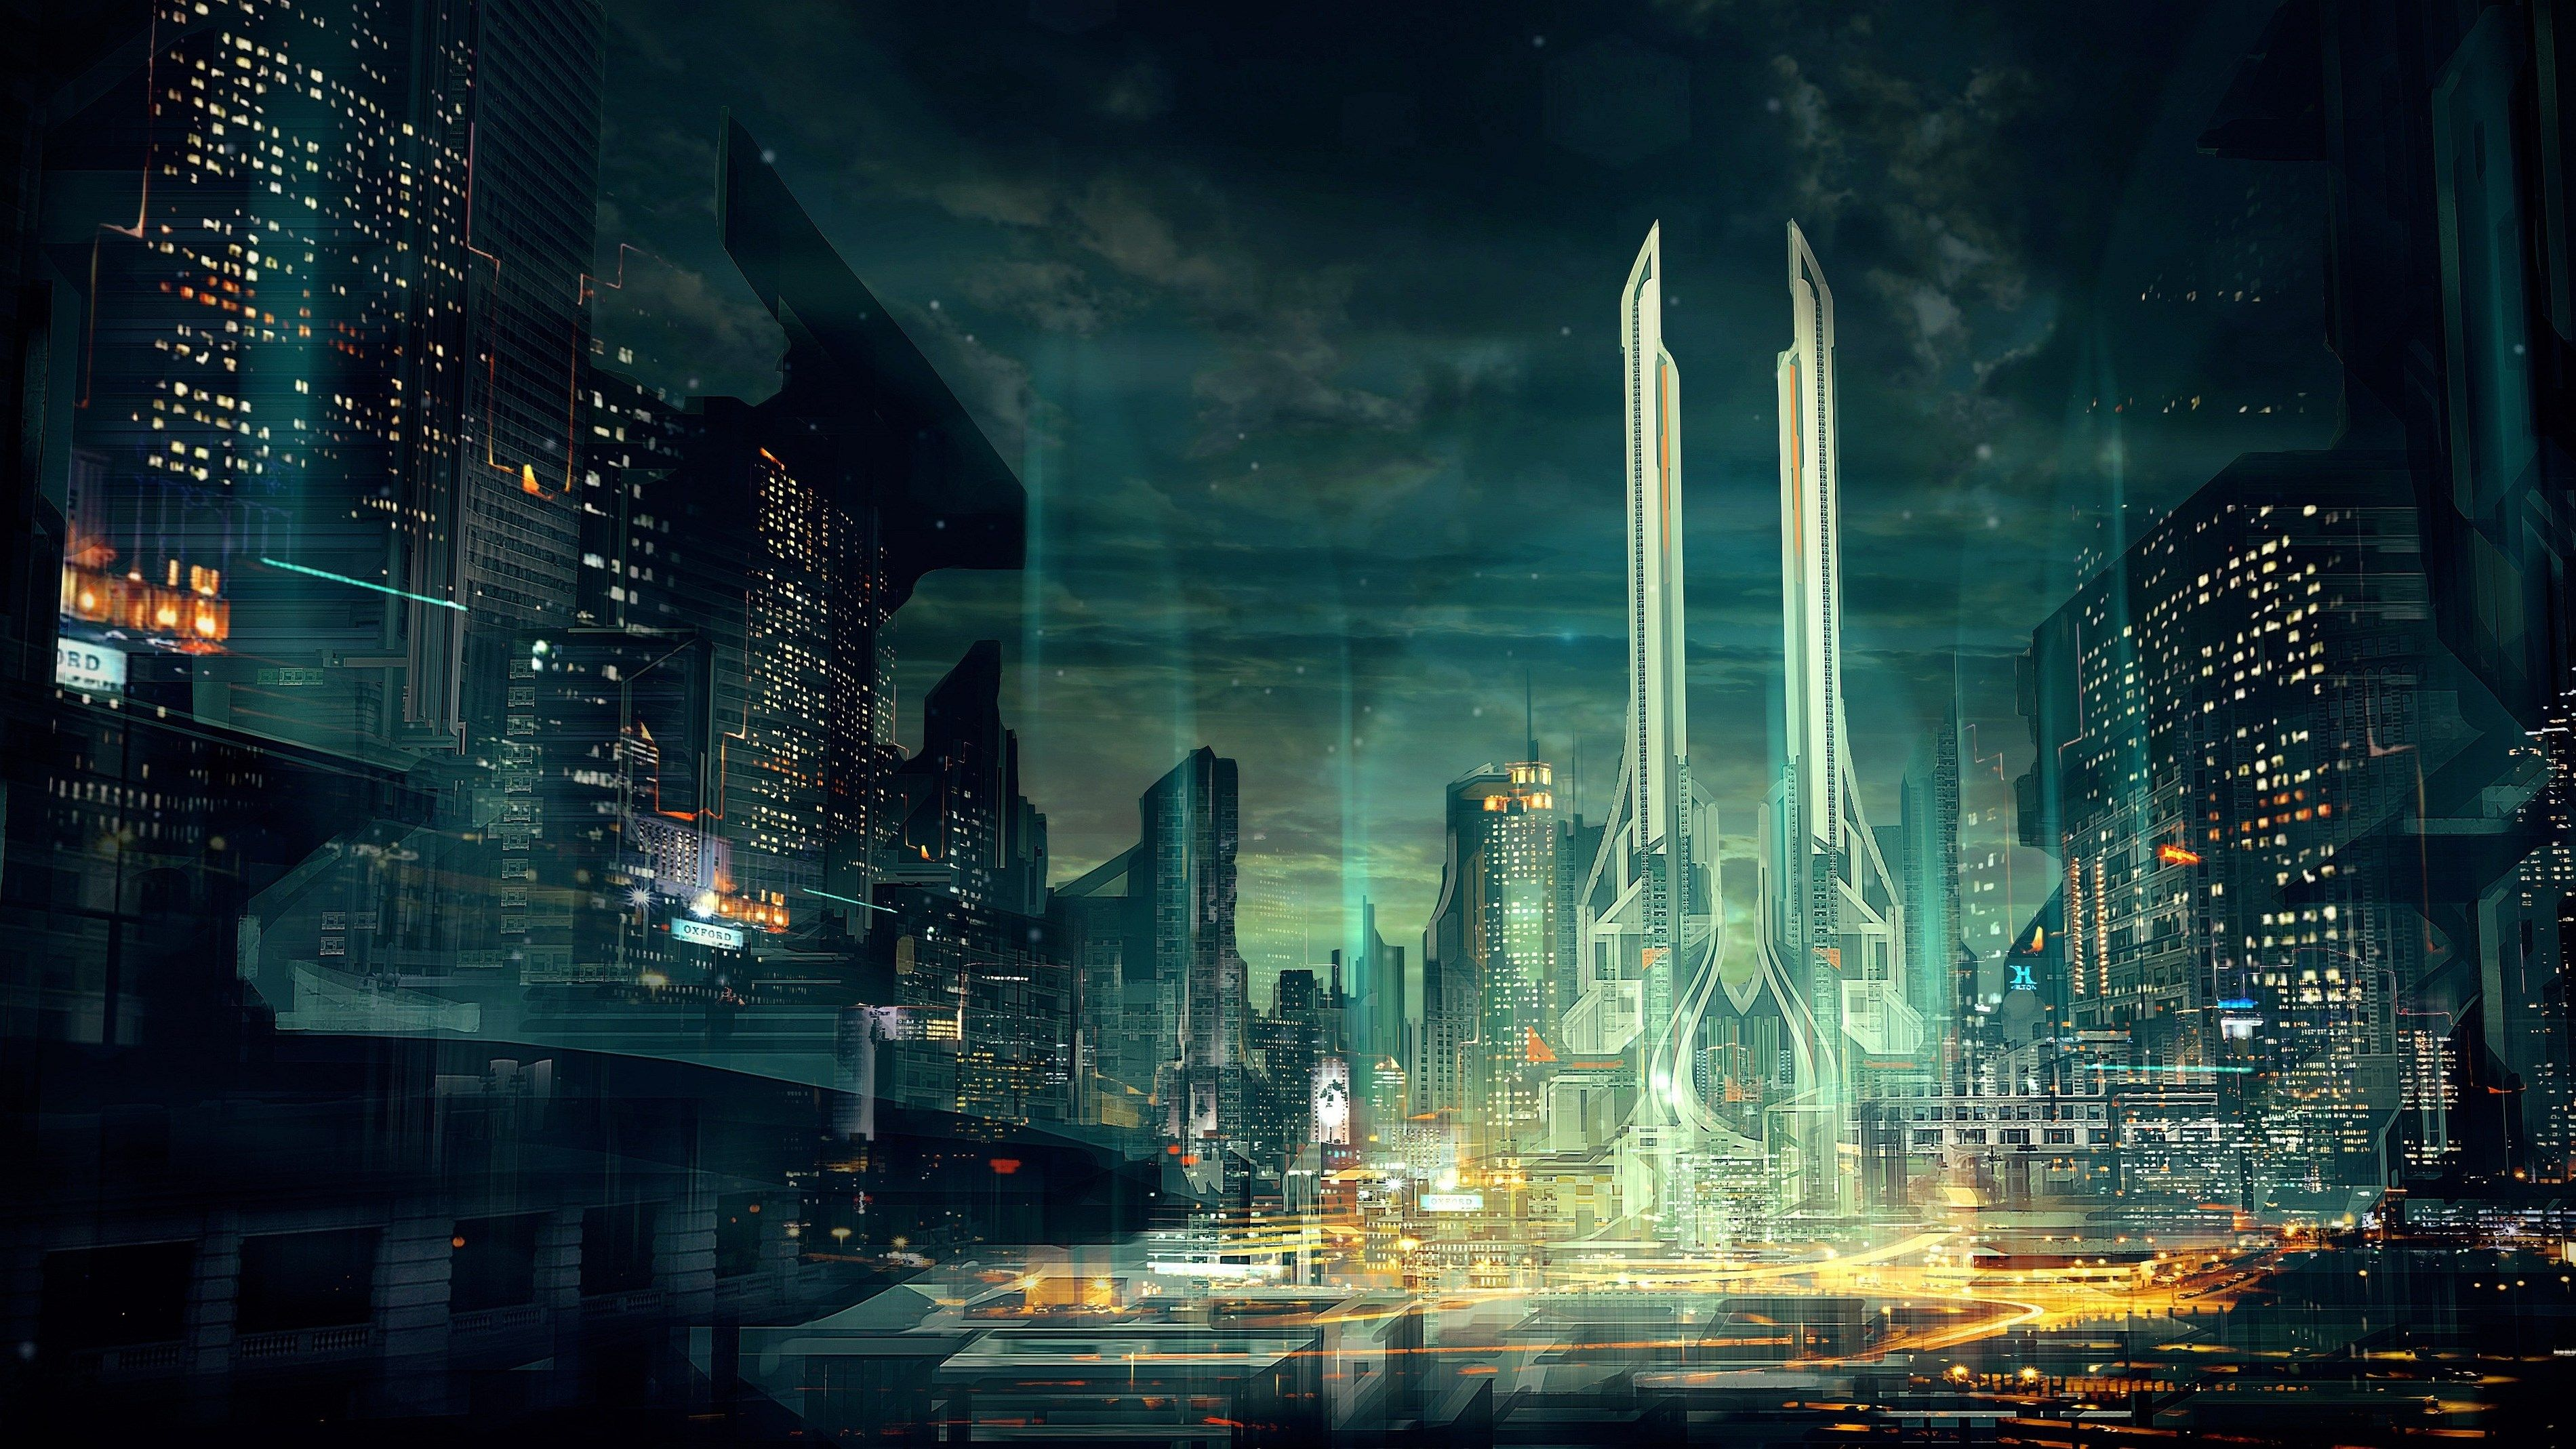 City Backround Desktop Nexus Wallpaper Chisholm Black 3800x2138 Futuristic City Sci Fi Wallpaper Future Wallpaper